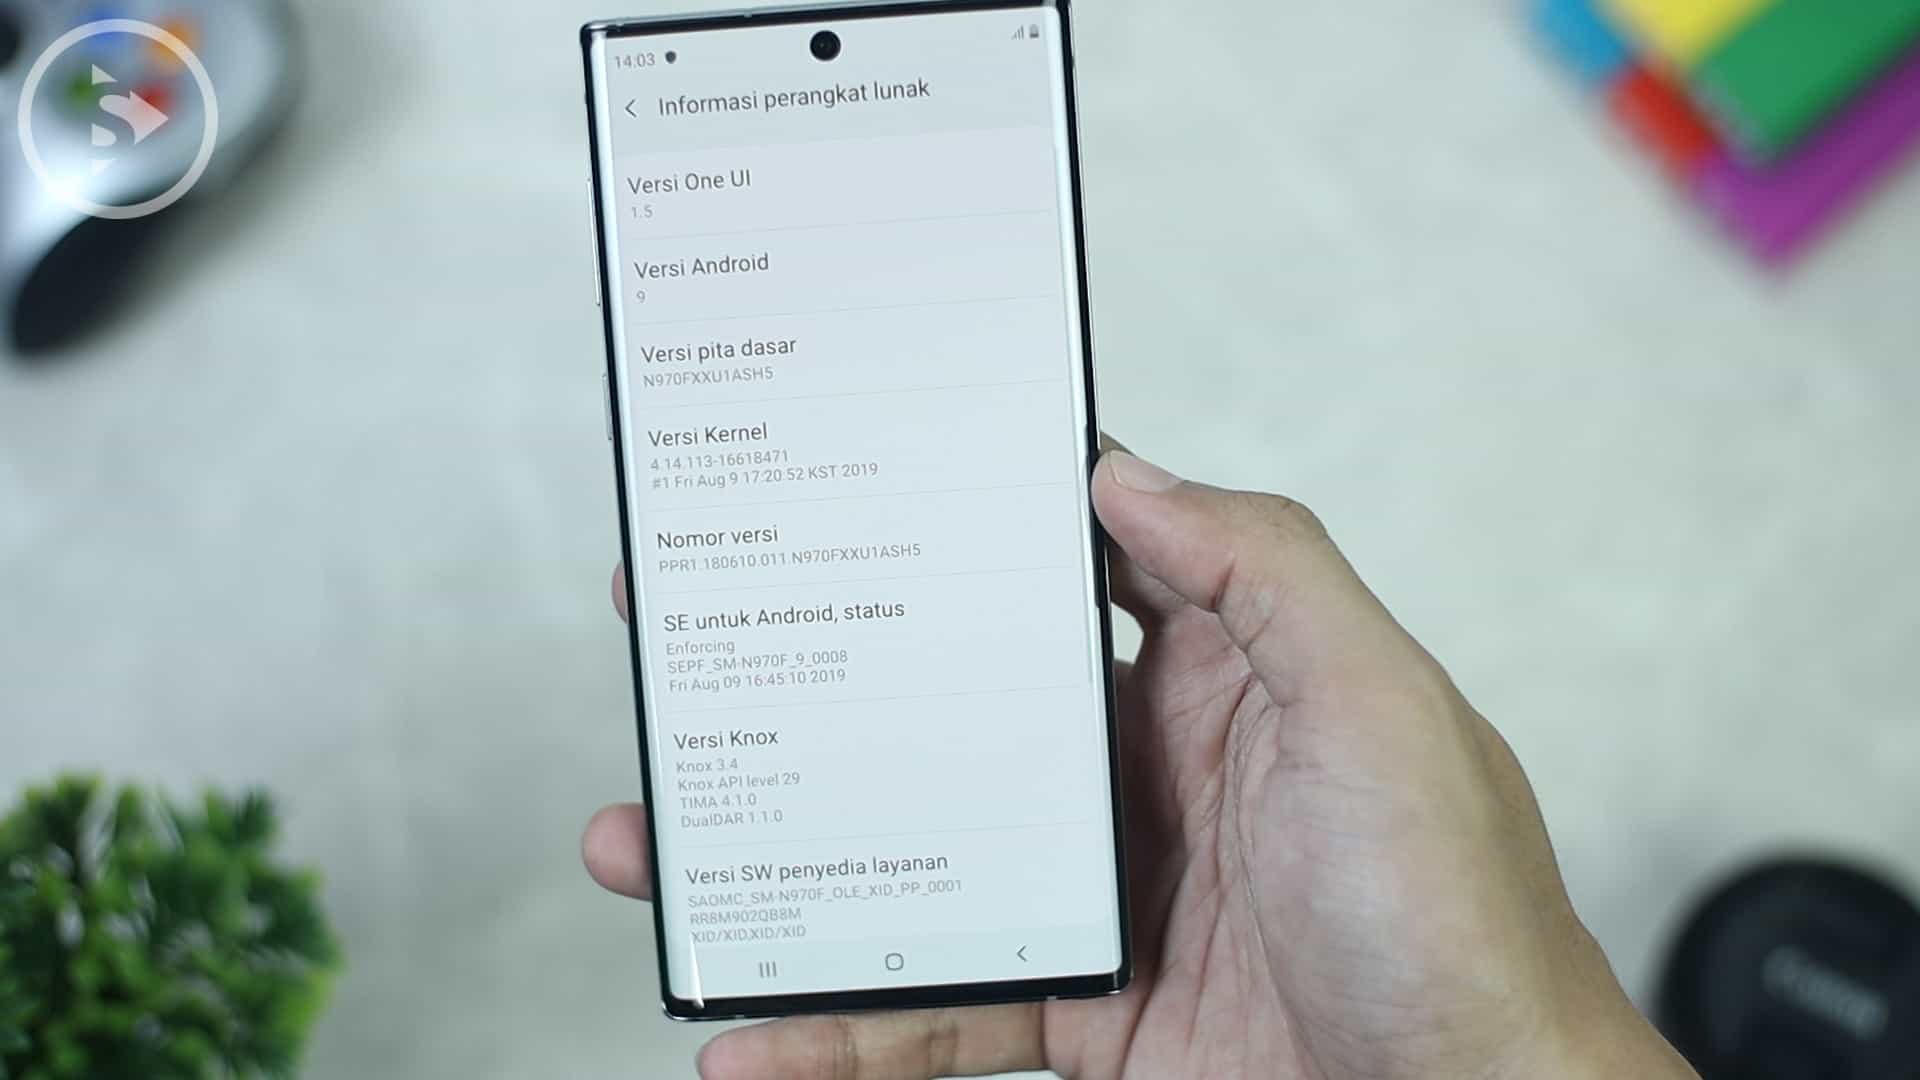 About Phone OneUI 1.5 Android 9.0 Samsung Galaxy Note10 Aura Glow - Unboxing HP Samsung Warna Indah di Tahun 2020 - Samsung Galaxy Note10 Warna Aura Glow